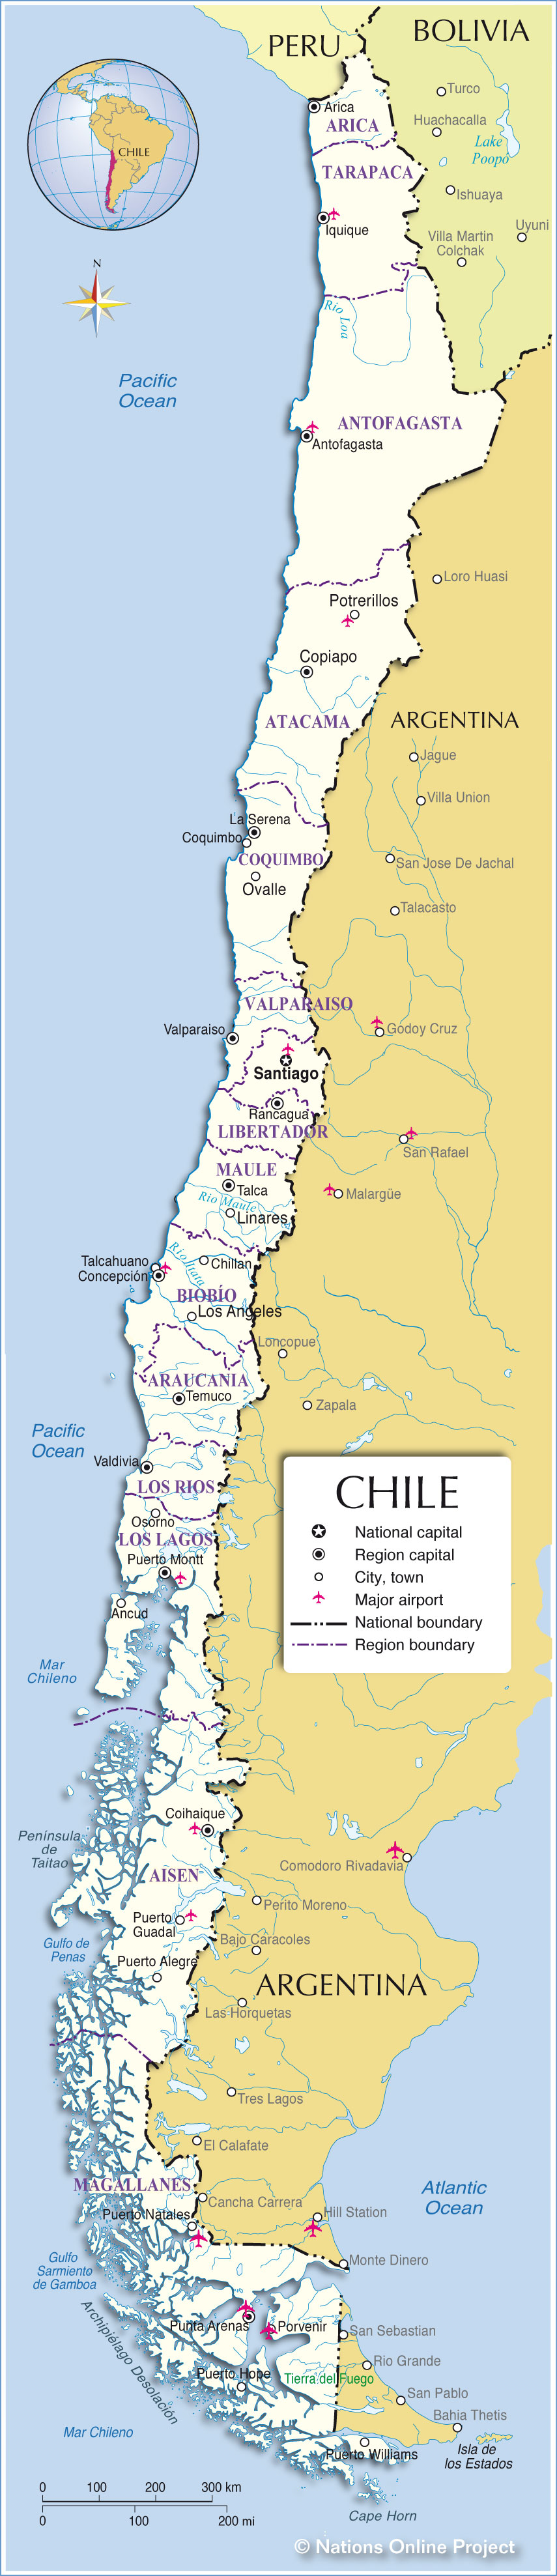 Administrative Map of Chile Nations Online Project